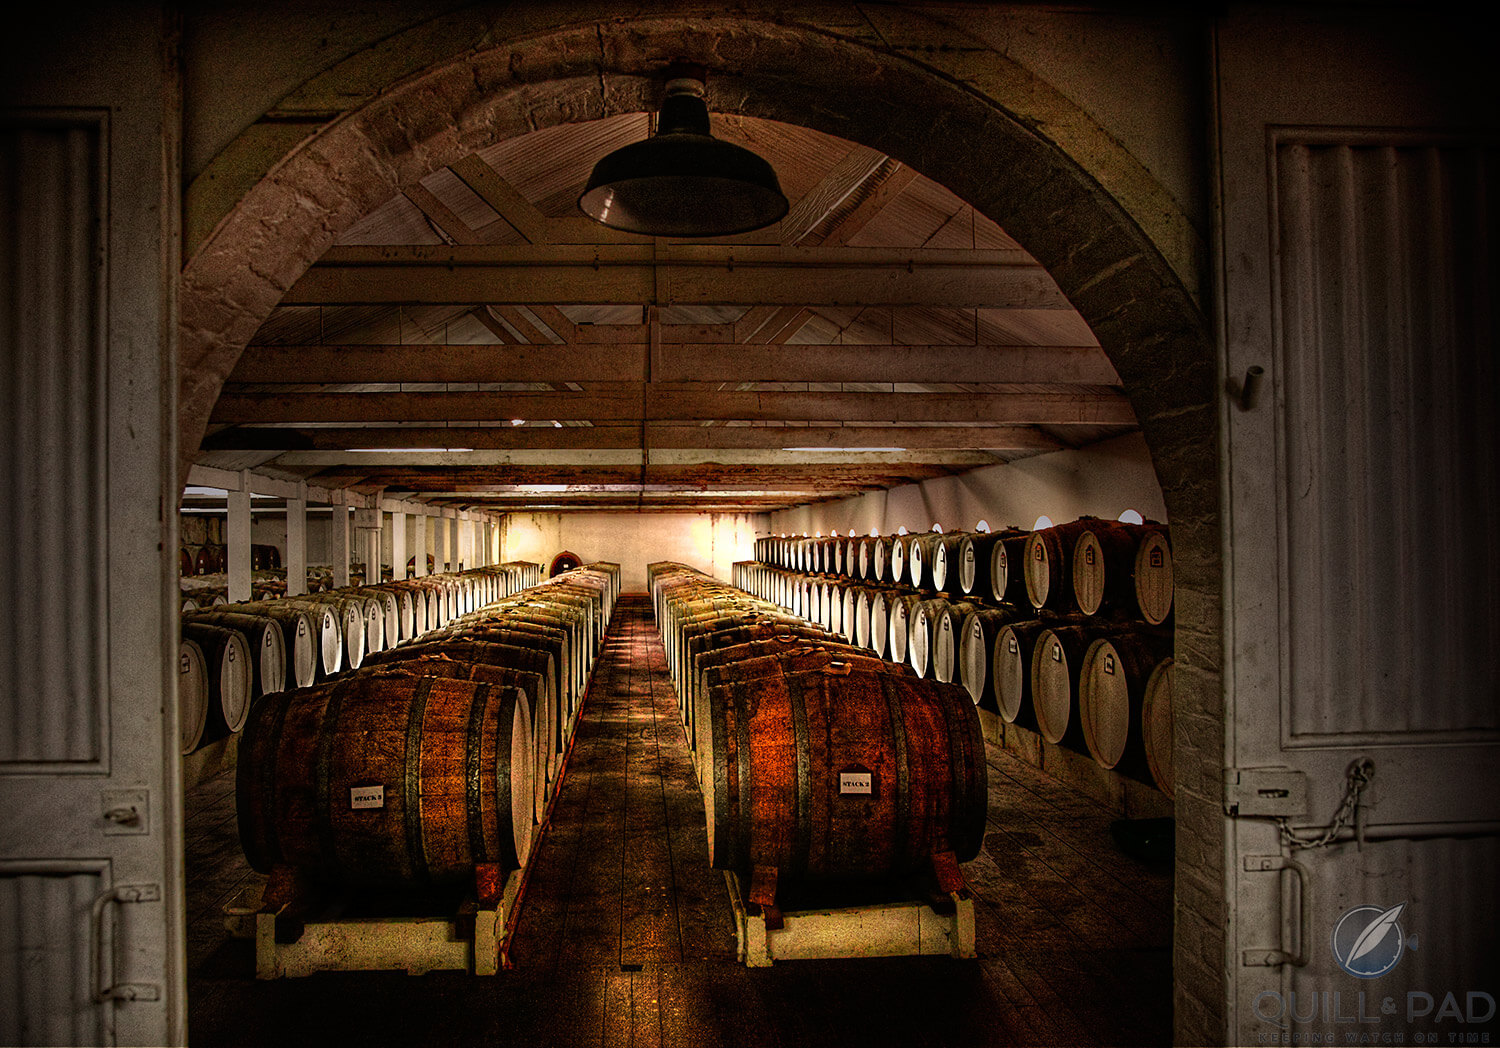 Seppeltsfield Cellar in Barossa Valley